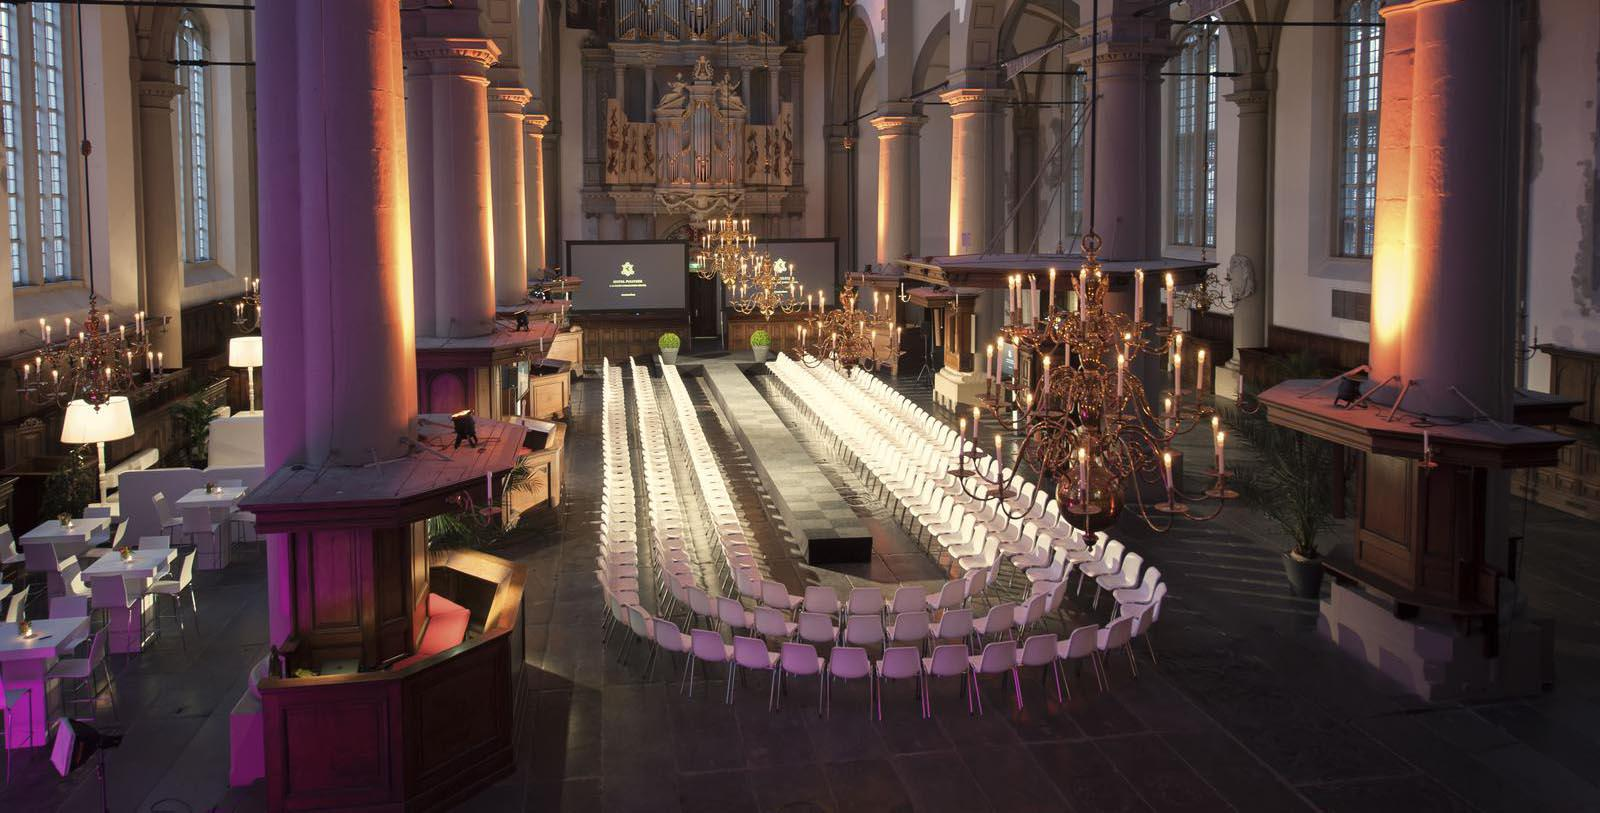 Image of Event Space Pulitzer Amsterdam, 17th Century, Member of Historic Hotels Worldwide, in Amsterdam, Netherlands, Experience